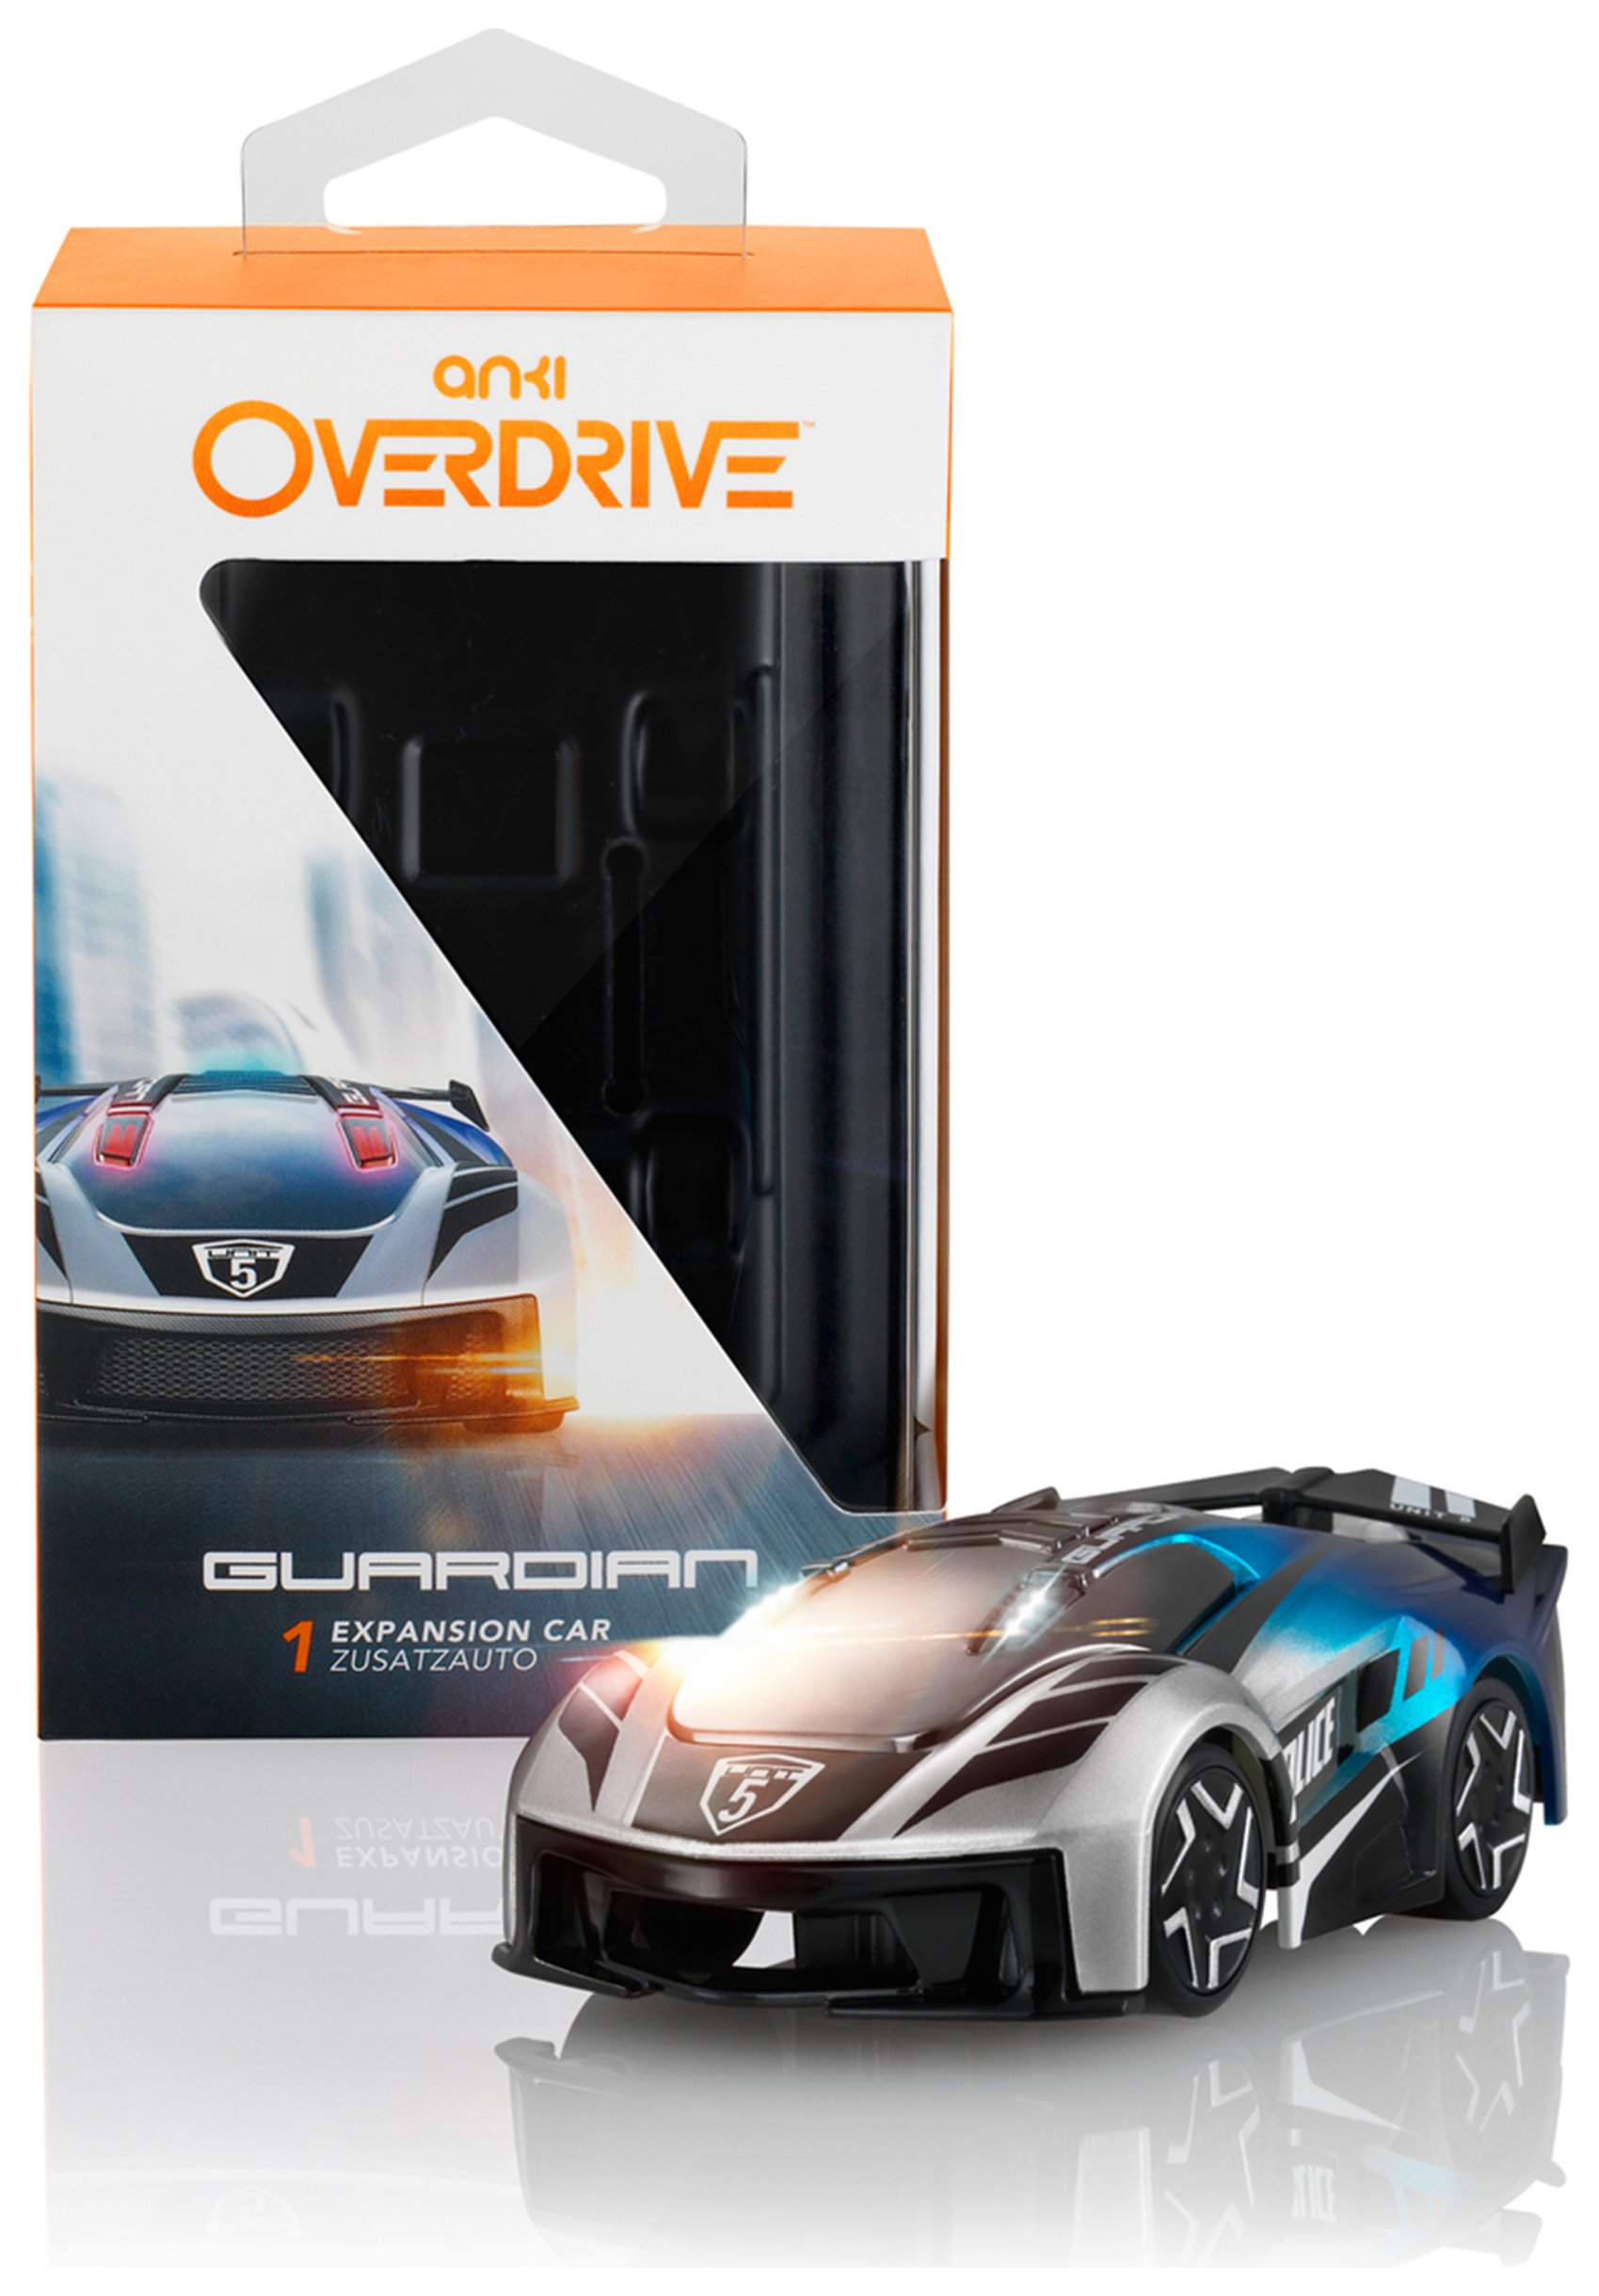 Image of anki Overdrive Expansion Car - Guardian